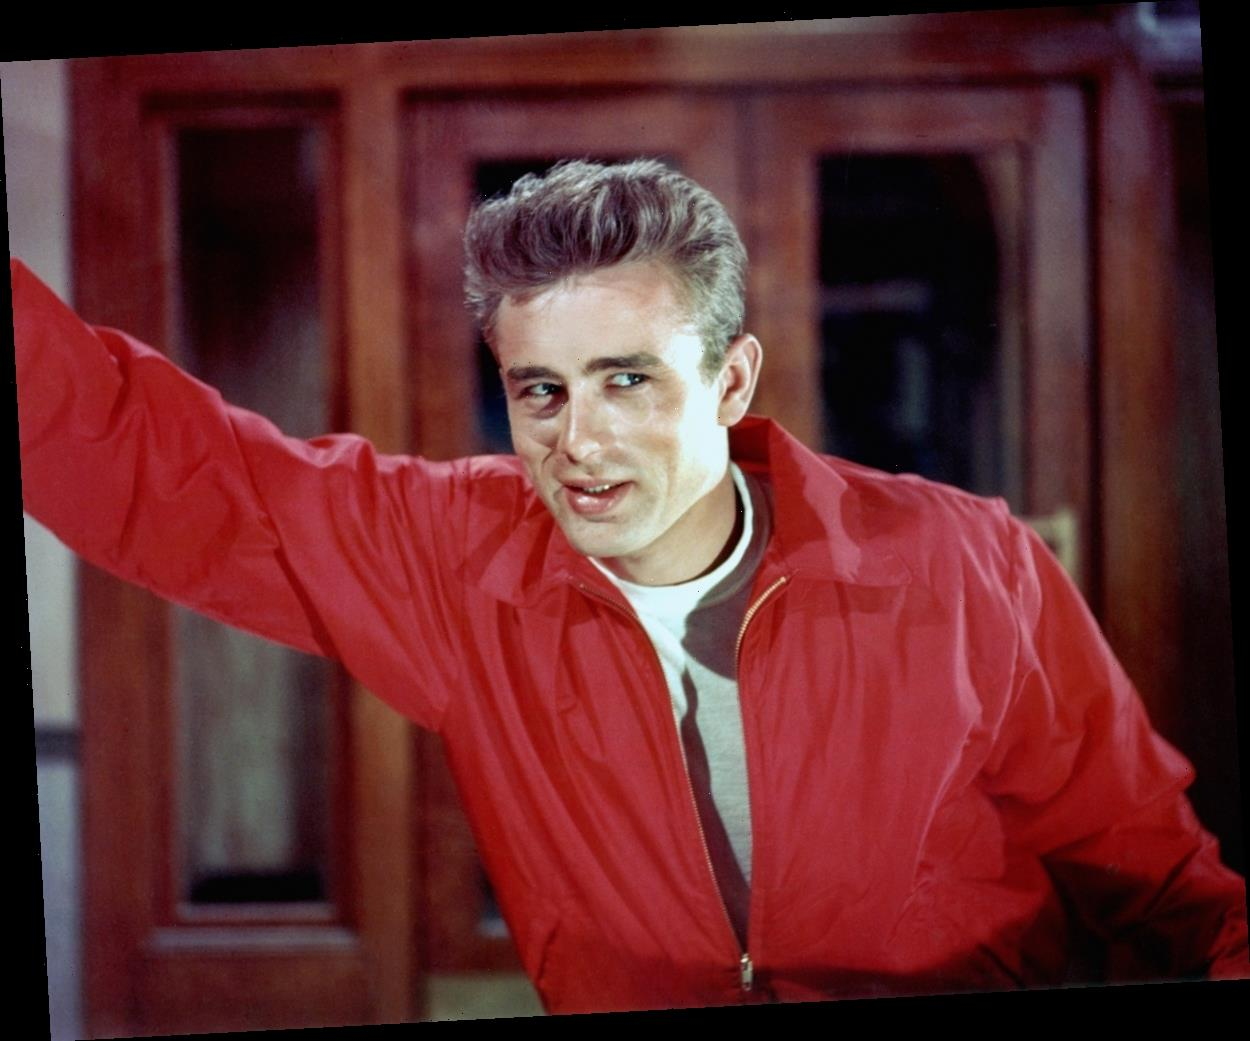 How Old Was James Dean When He Died?